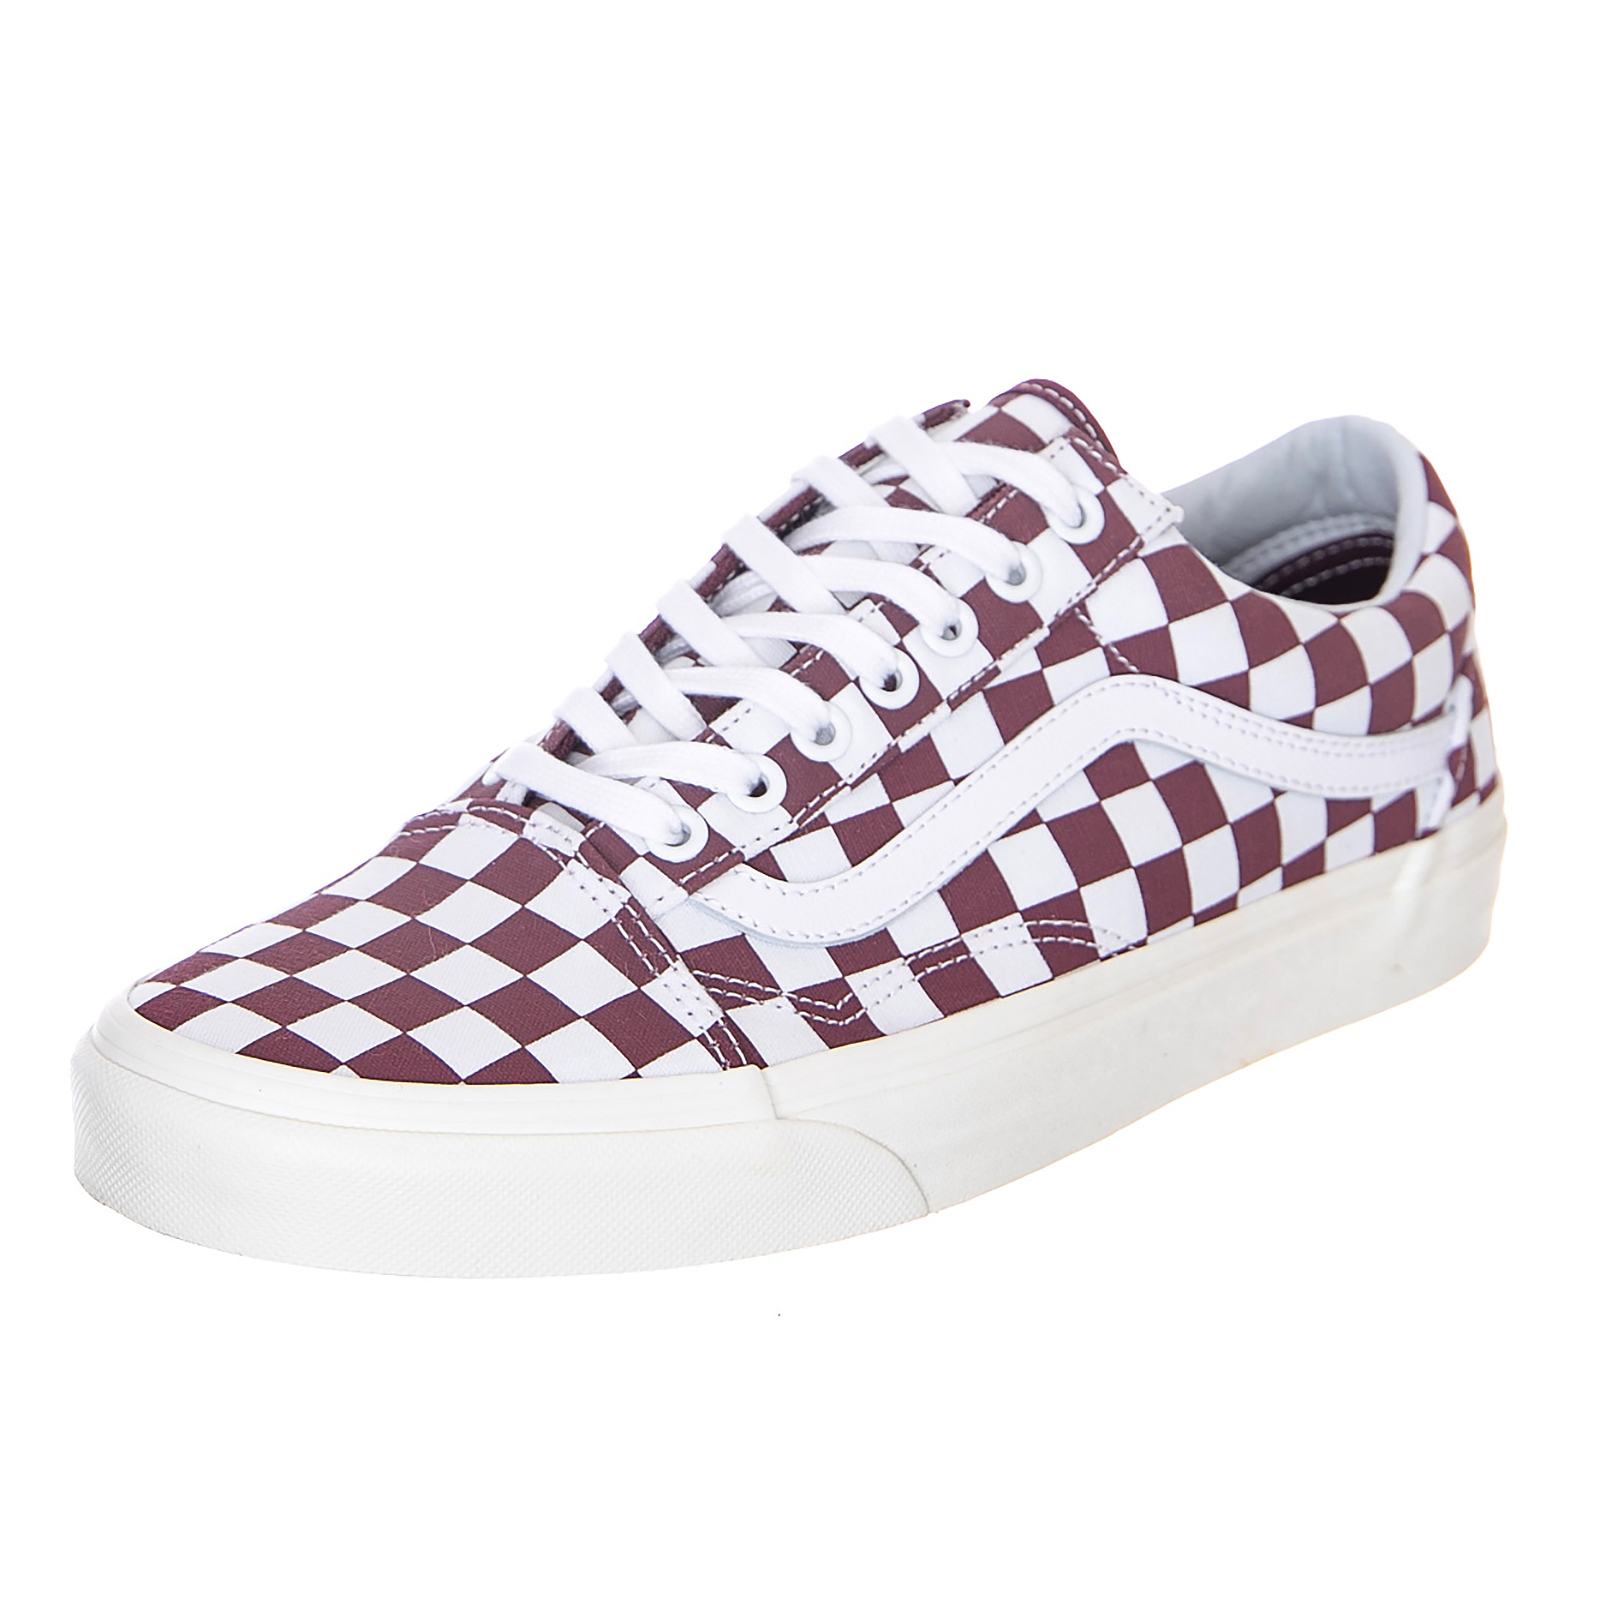 Details about Vans Old Skool Checkerboard Port RoyaleMarshmallow Sneakers Low Man Burgundy